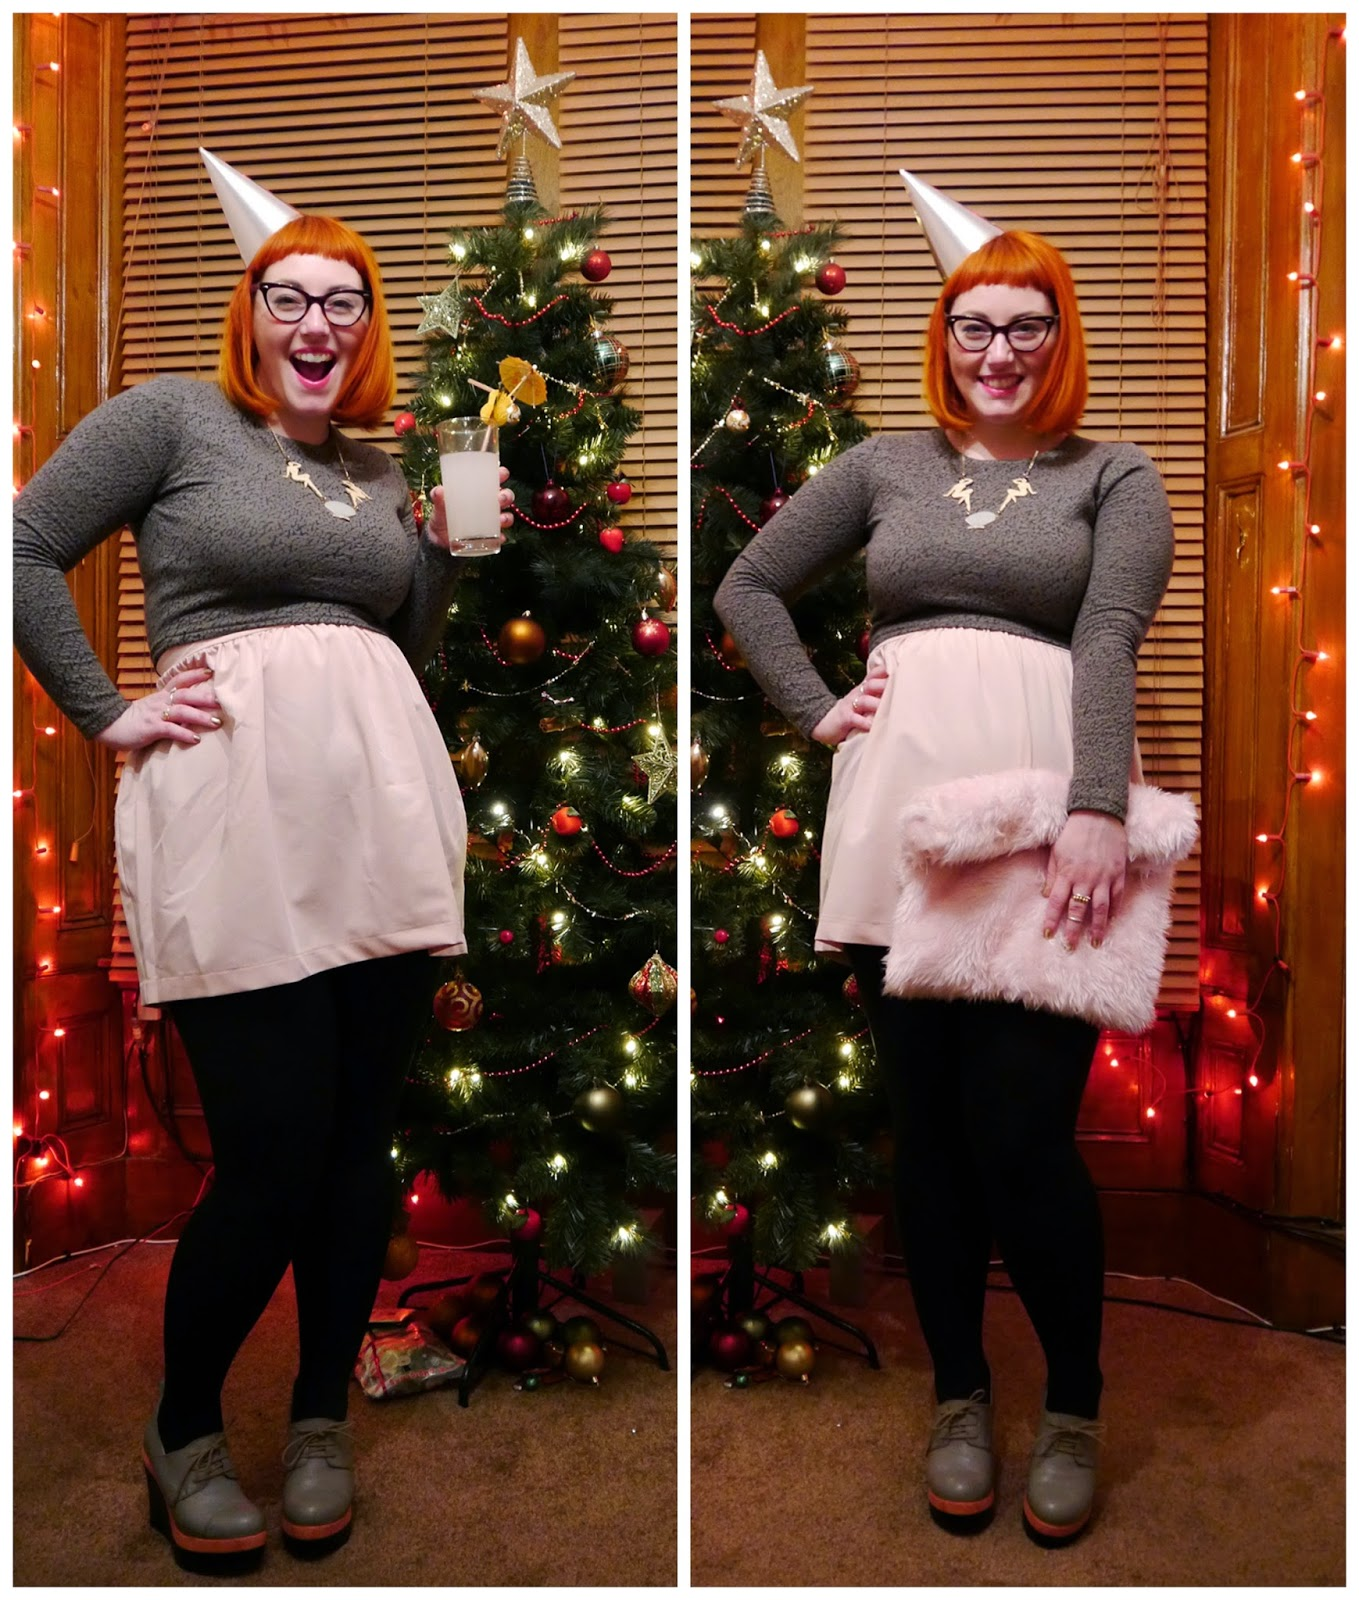 Outfit, party outfit, new years eve, hogmanay, ninties style, 90's style outfit,Wear Eponymous crop top, Wear Eponymous skirt, Wear Eponymous Outfit, Karen Mabon necklace, Party hat, pink faux fur clutch bag, platform shoes, Scottish bloggers, retro hogmanay, Christmas tree, festive style